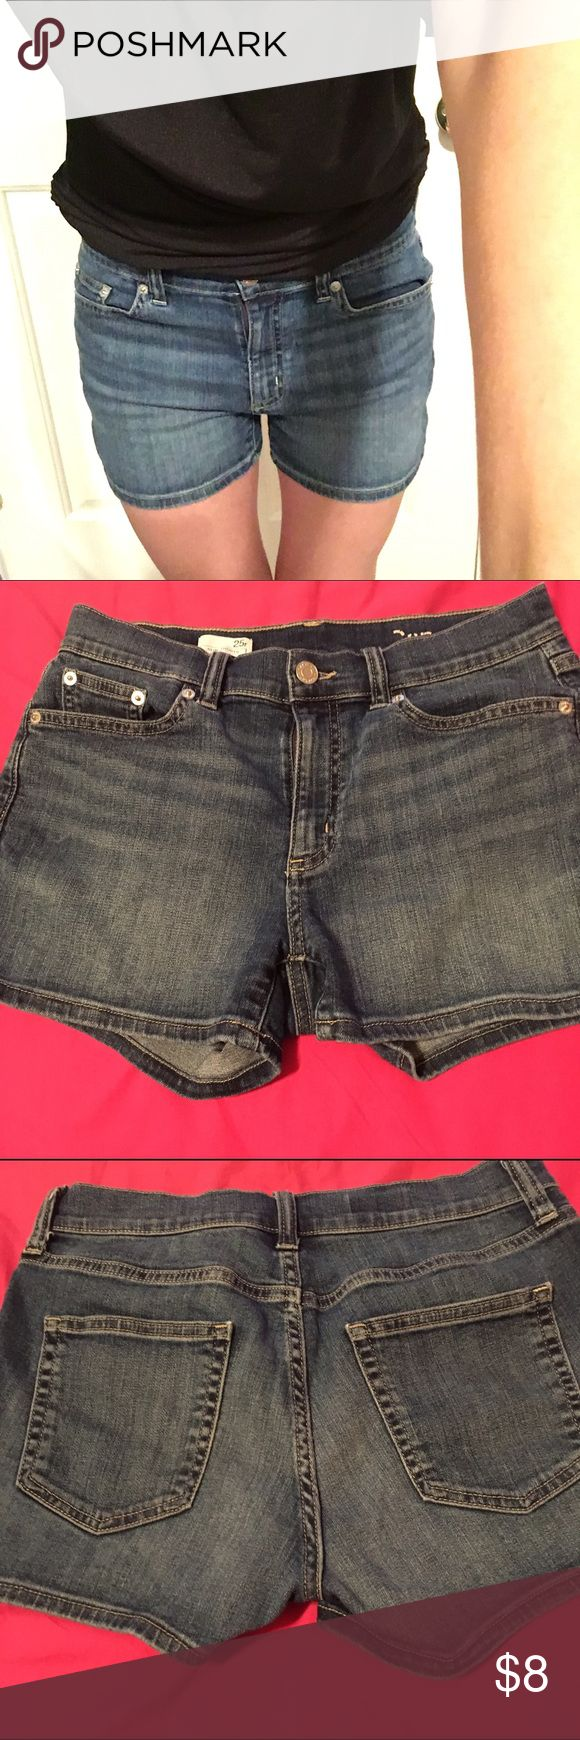 GAP Jean Shorts size 25 These shorts have been worn a few times, but have lots of life left! The gap logo has worn off (it was gone after wearing it twice). Size 25r, but I typically wear a 27 and they fit but are a little bit tight. GAP Shorts Jean Shorts